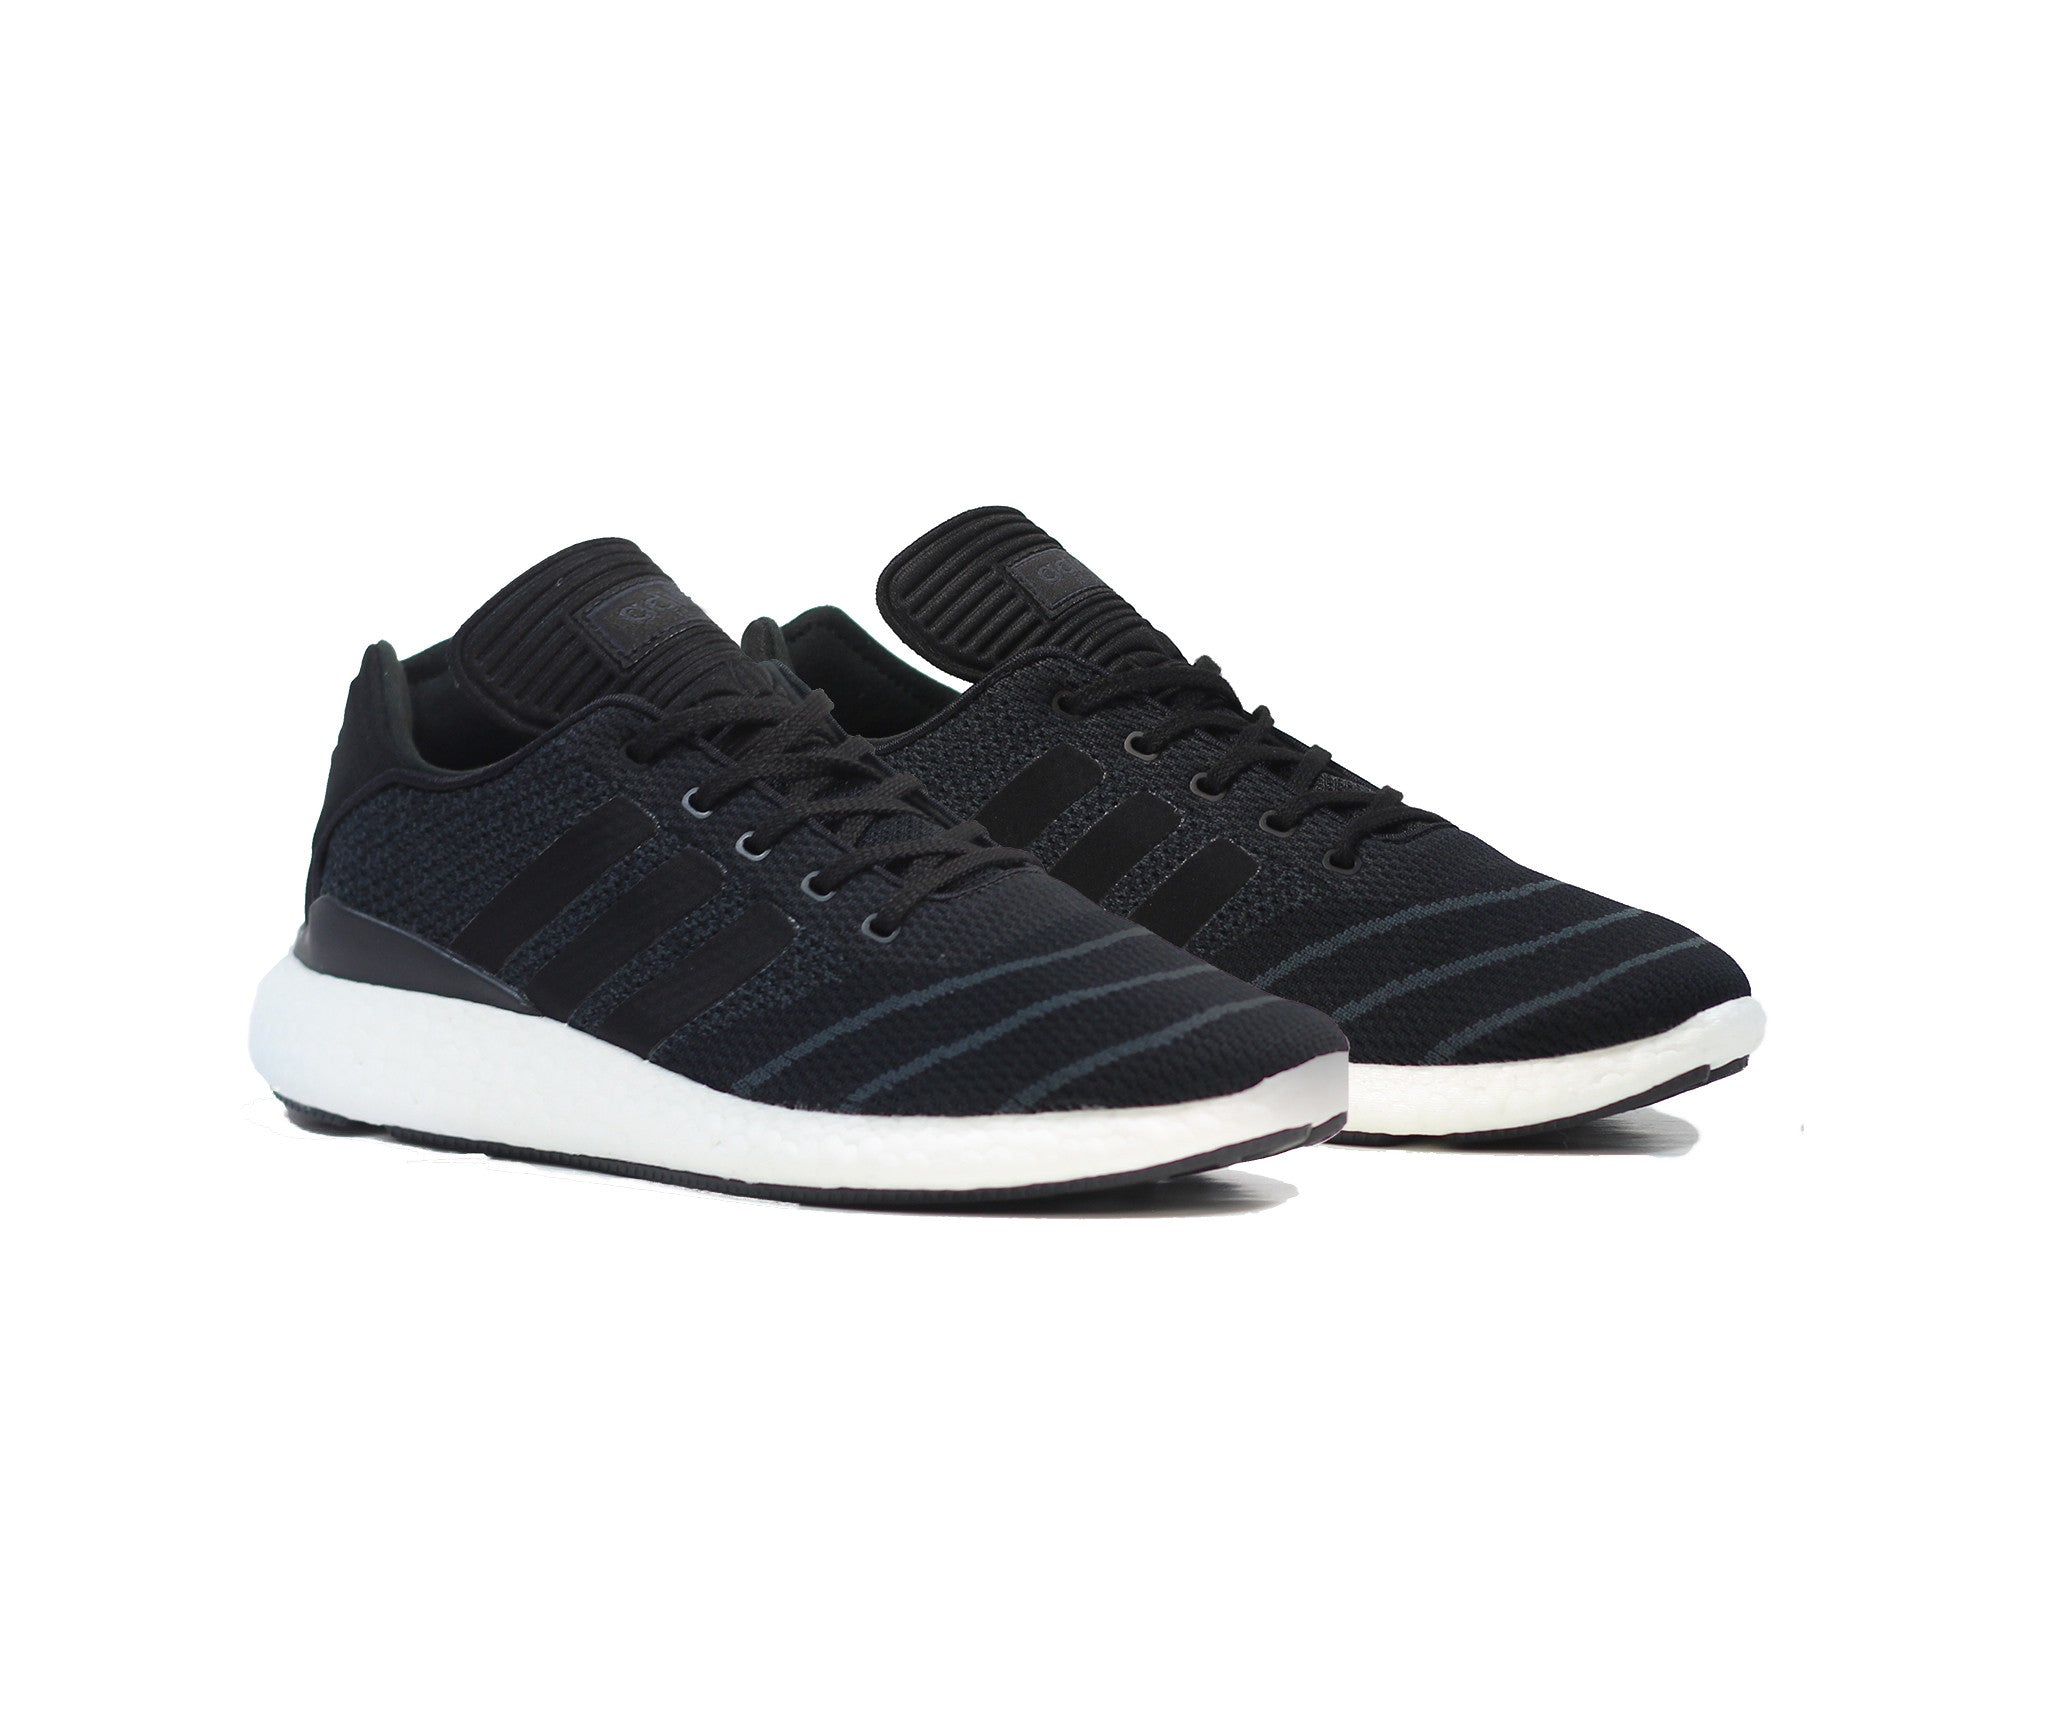 8798053d9 ... france adidas pure boost pk black white 07563 6f29a